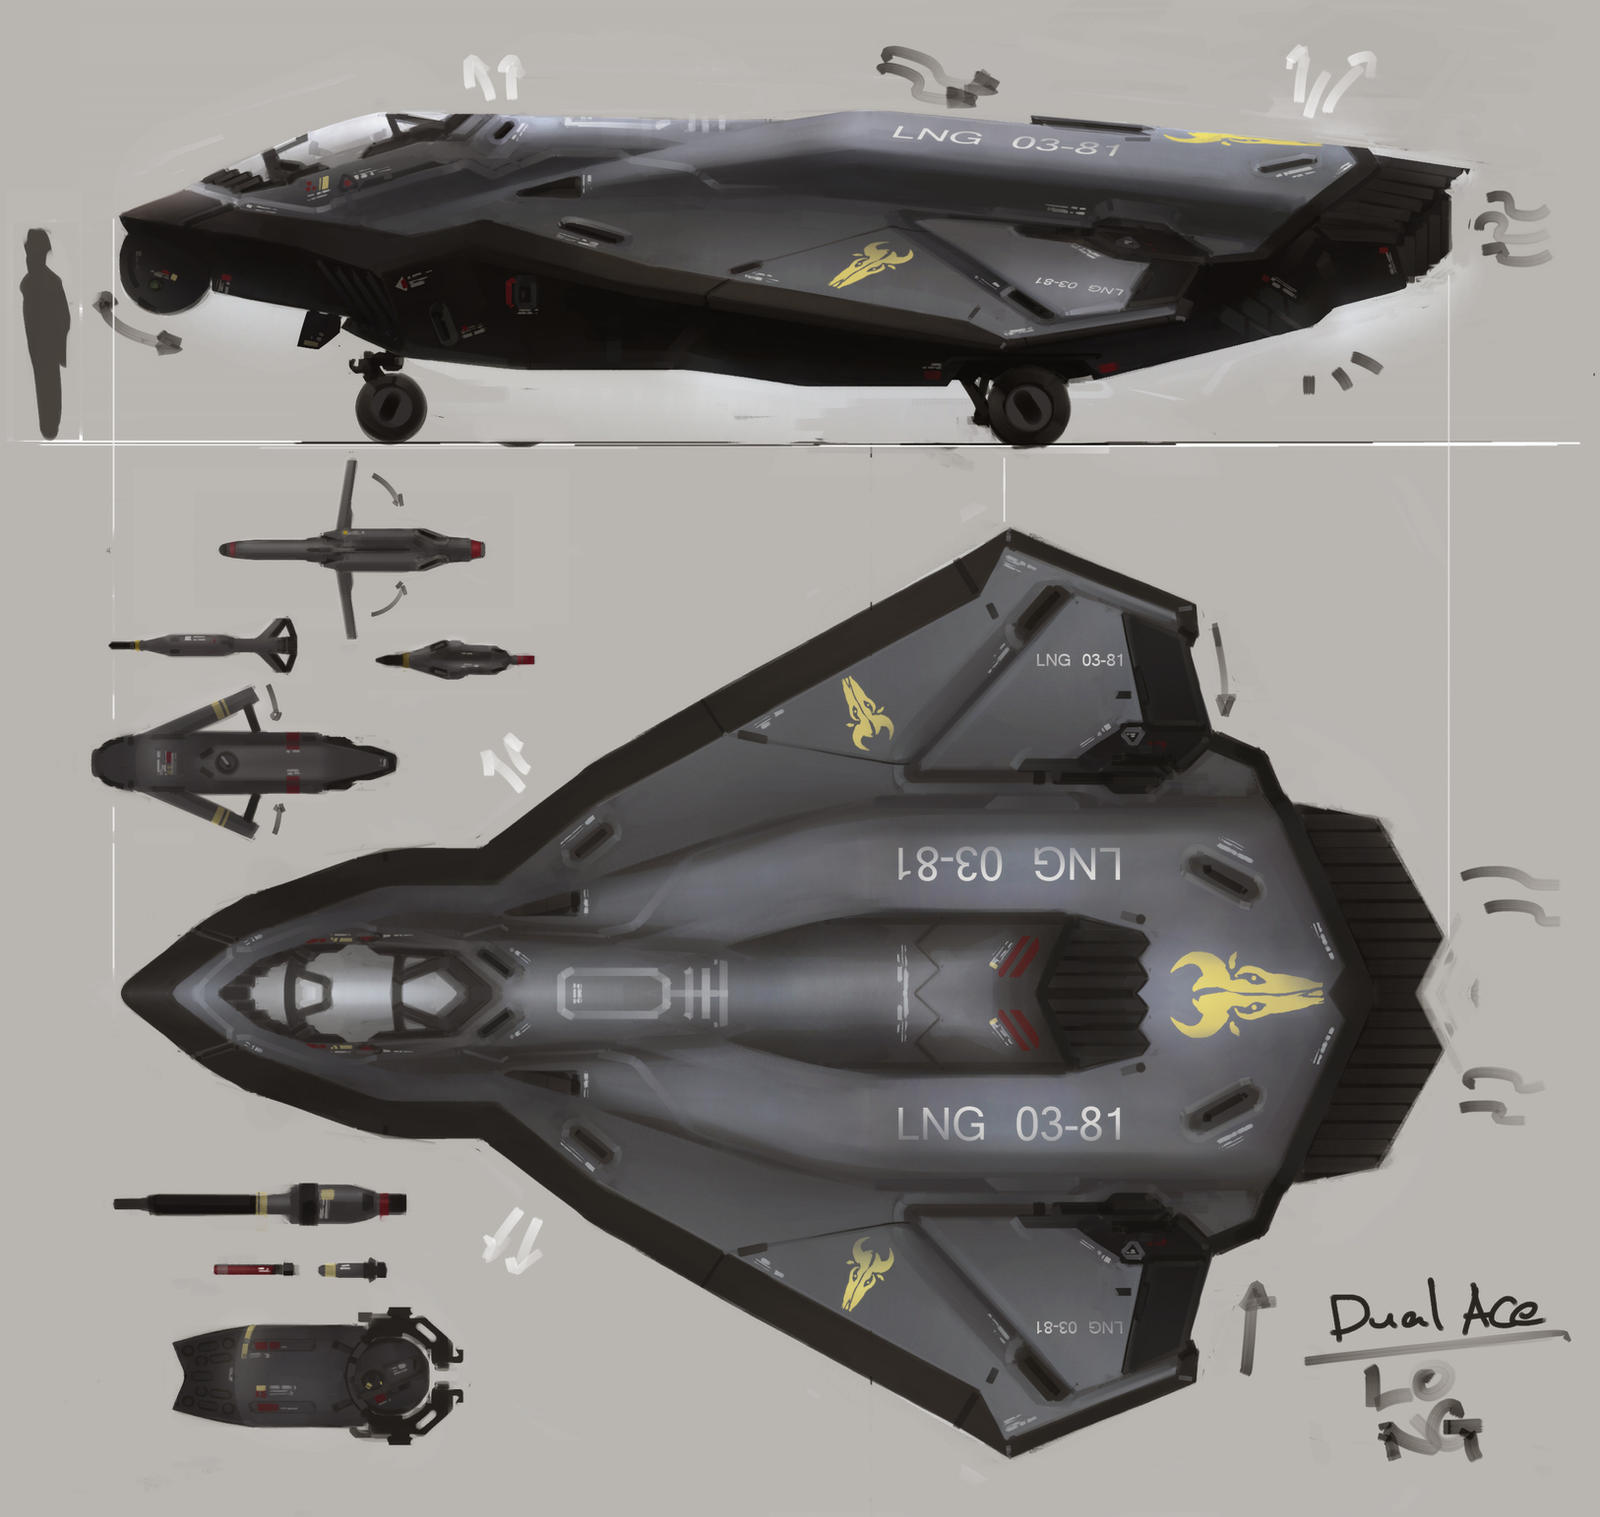 more fucking spaceships by 0800